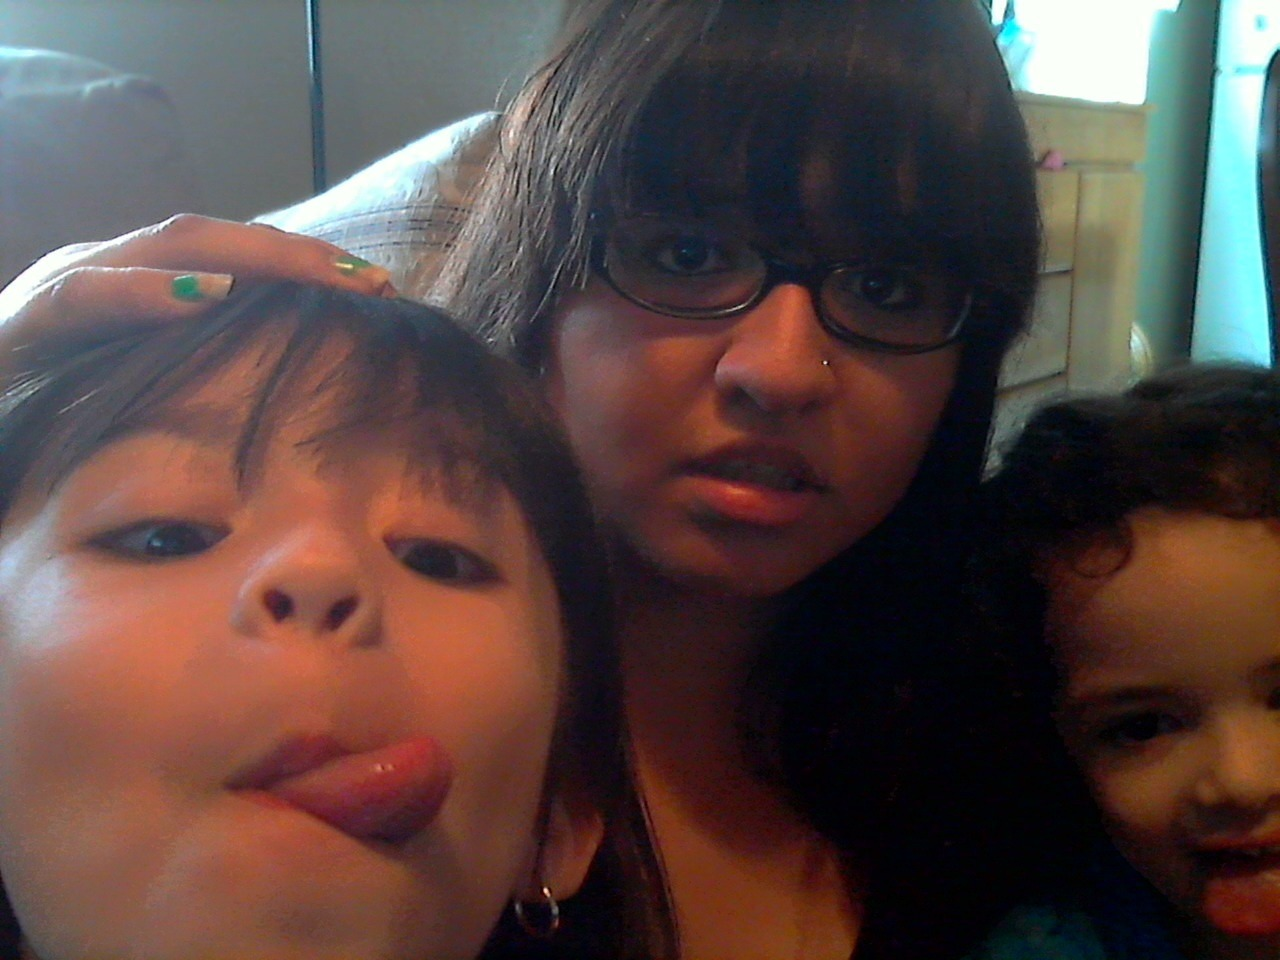 Babysitting my sisters is driving me insane.